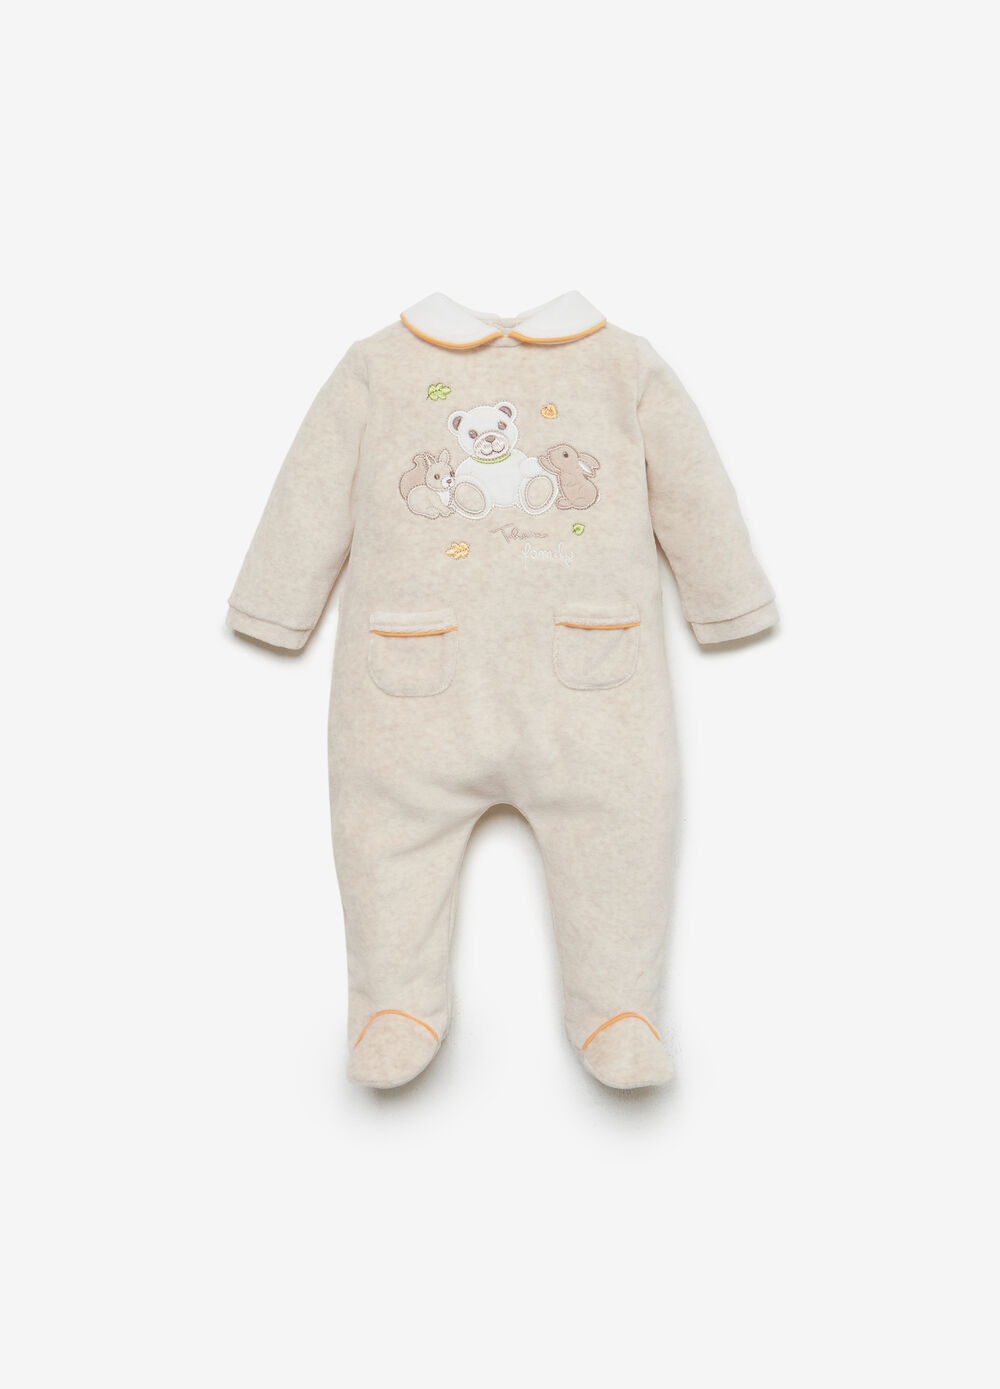 THUN cotton blend romper suit with pockets